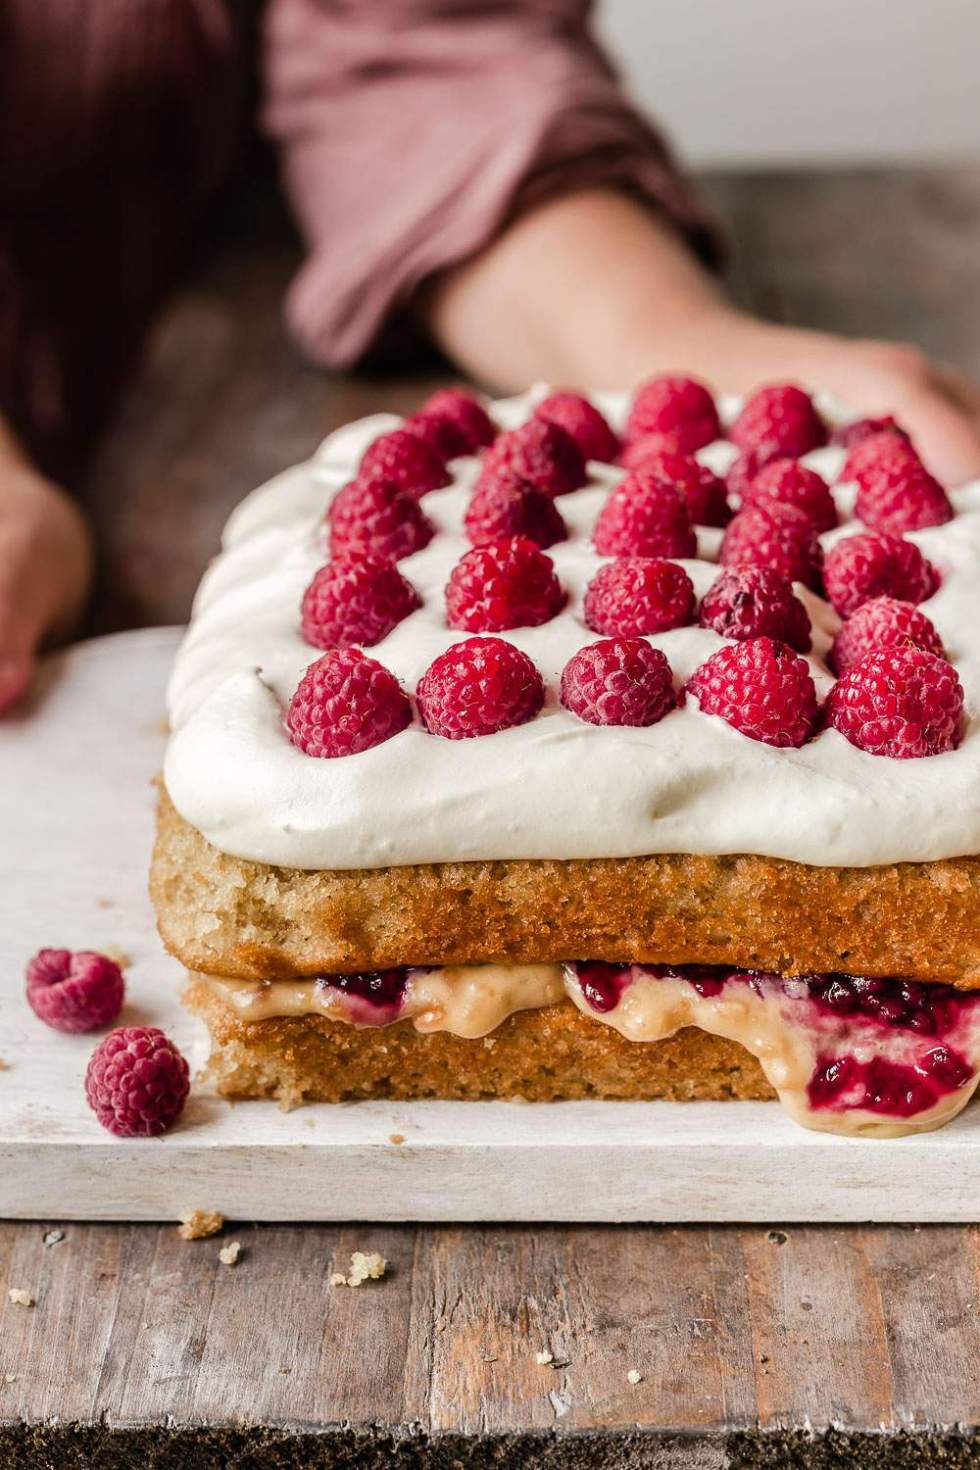 Vegan Peanut butter and jelly vanilla cream cake